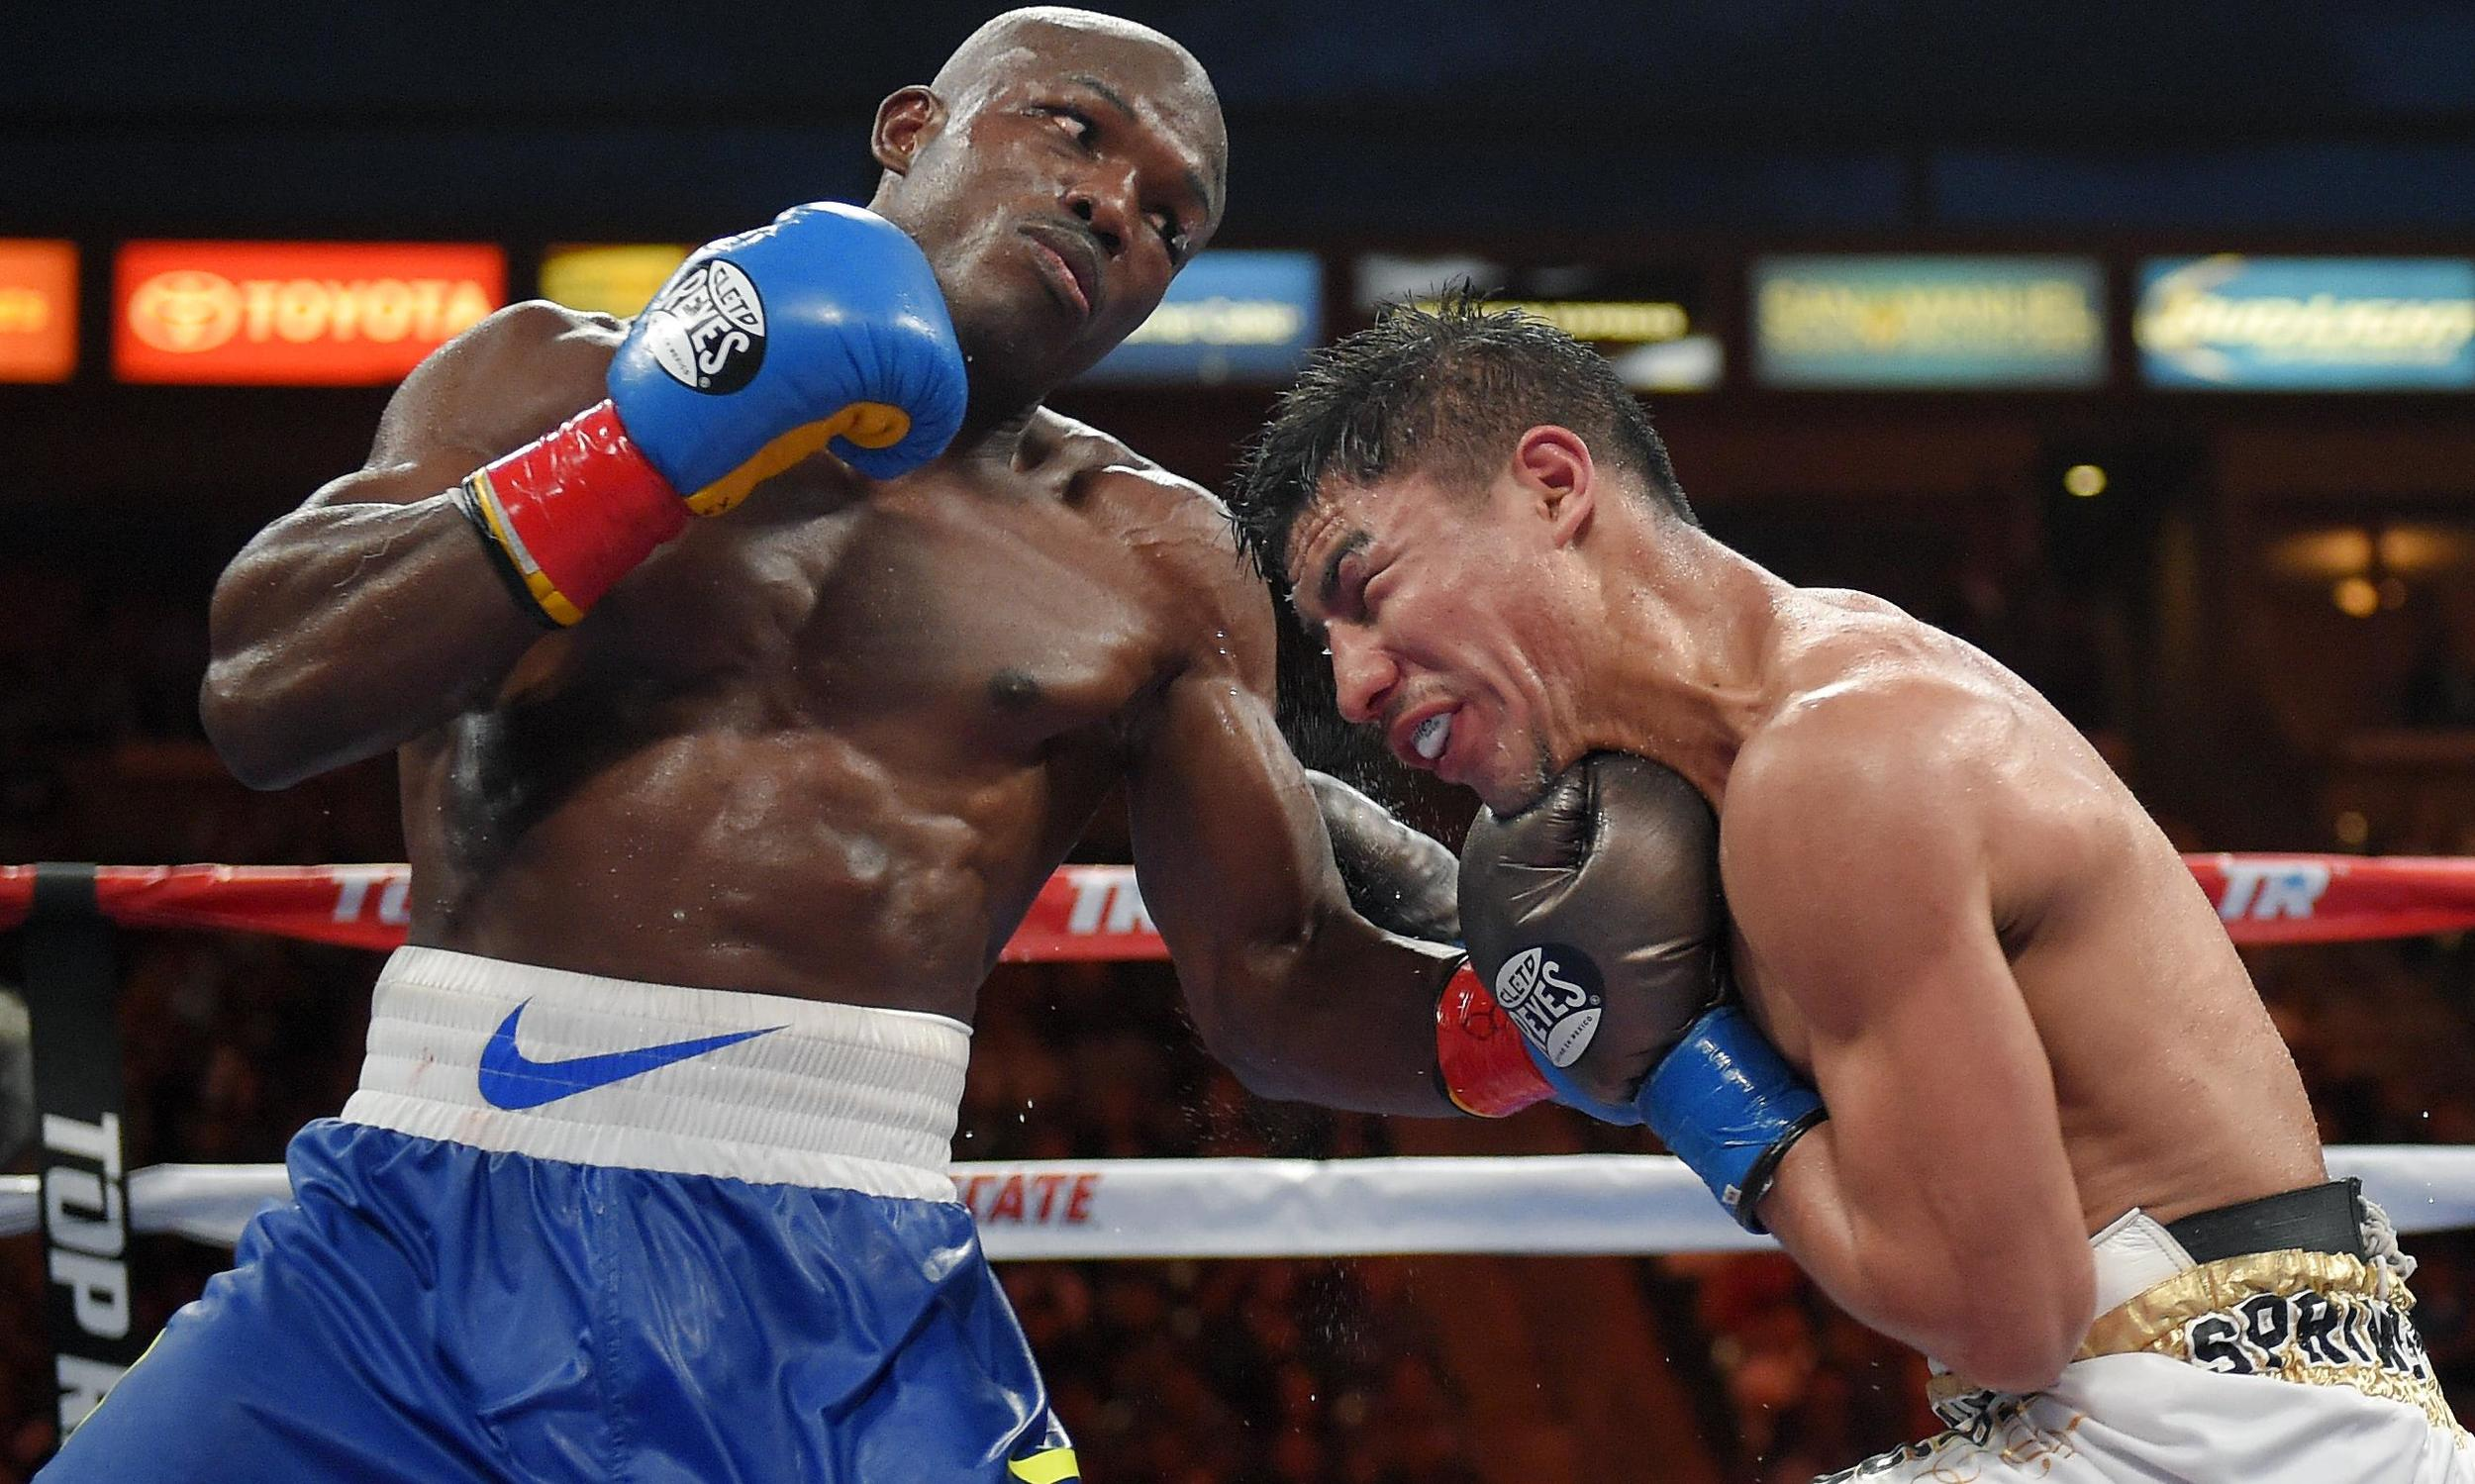 Bradley lands a flush left hook to the chin of Vargas.Photo Credit: Mark J. Terrill/AP